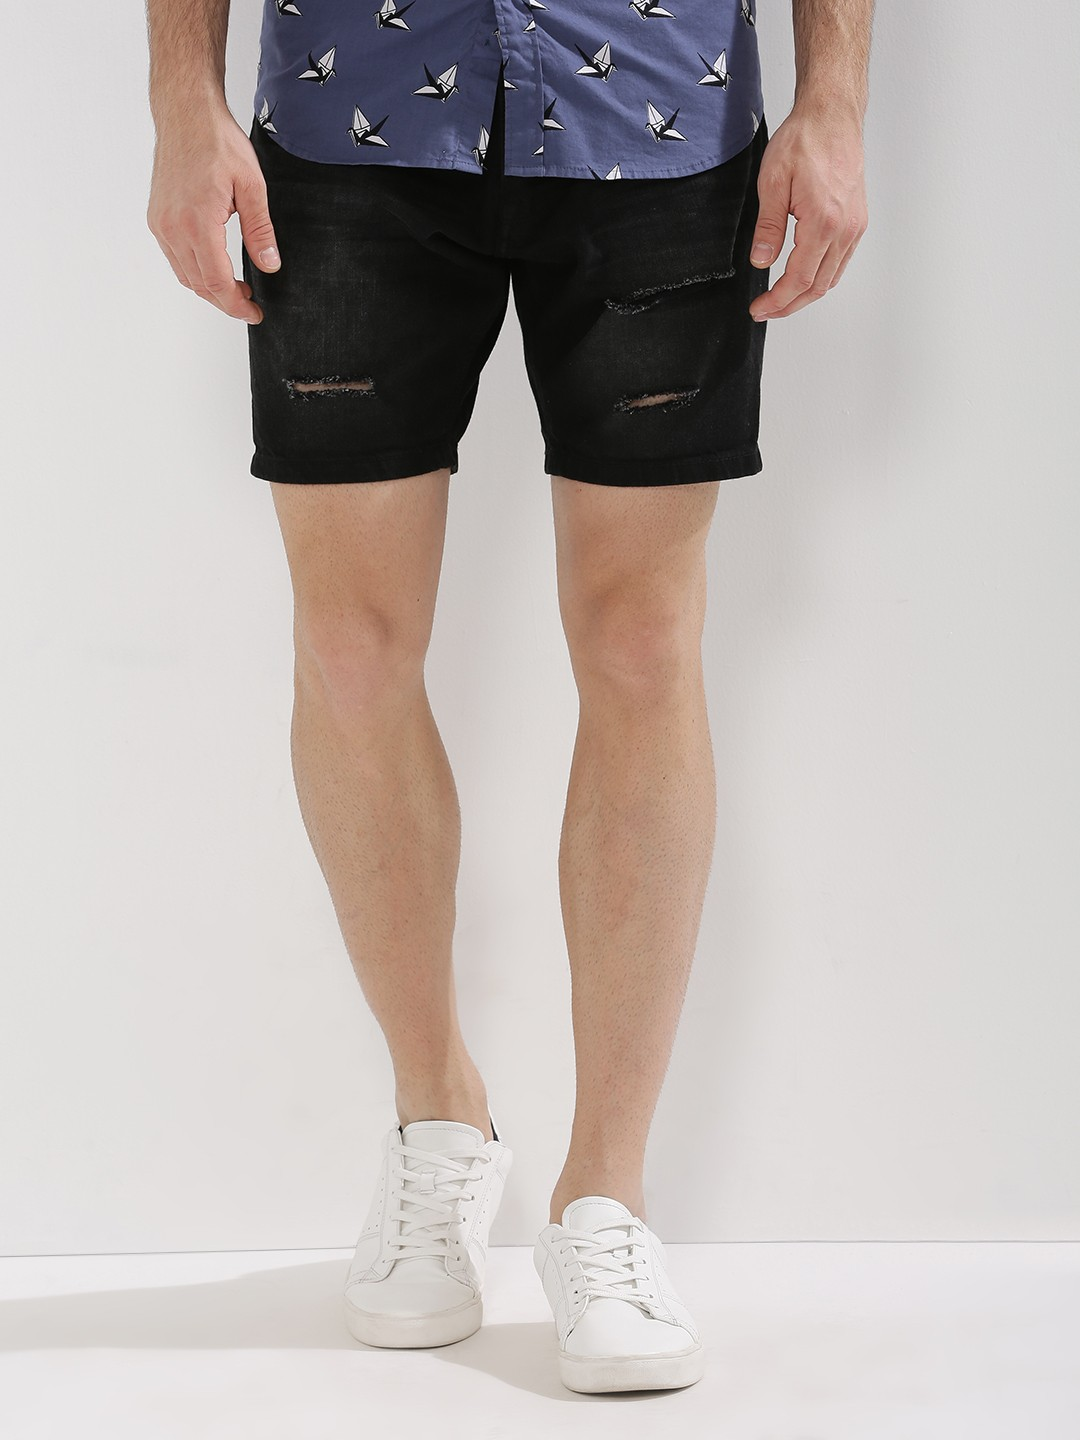 Buy BRAVE SOUL Ripped Denim Shorts For Men - Men's Black Shorts ...